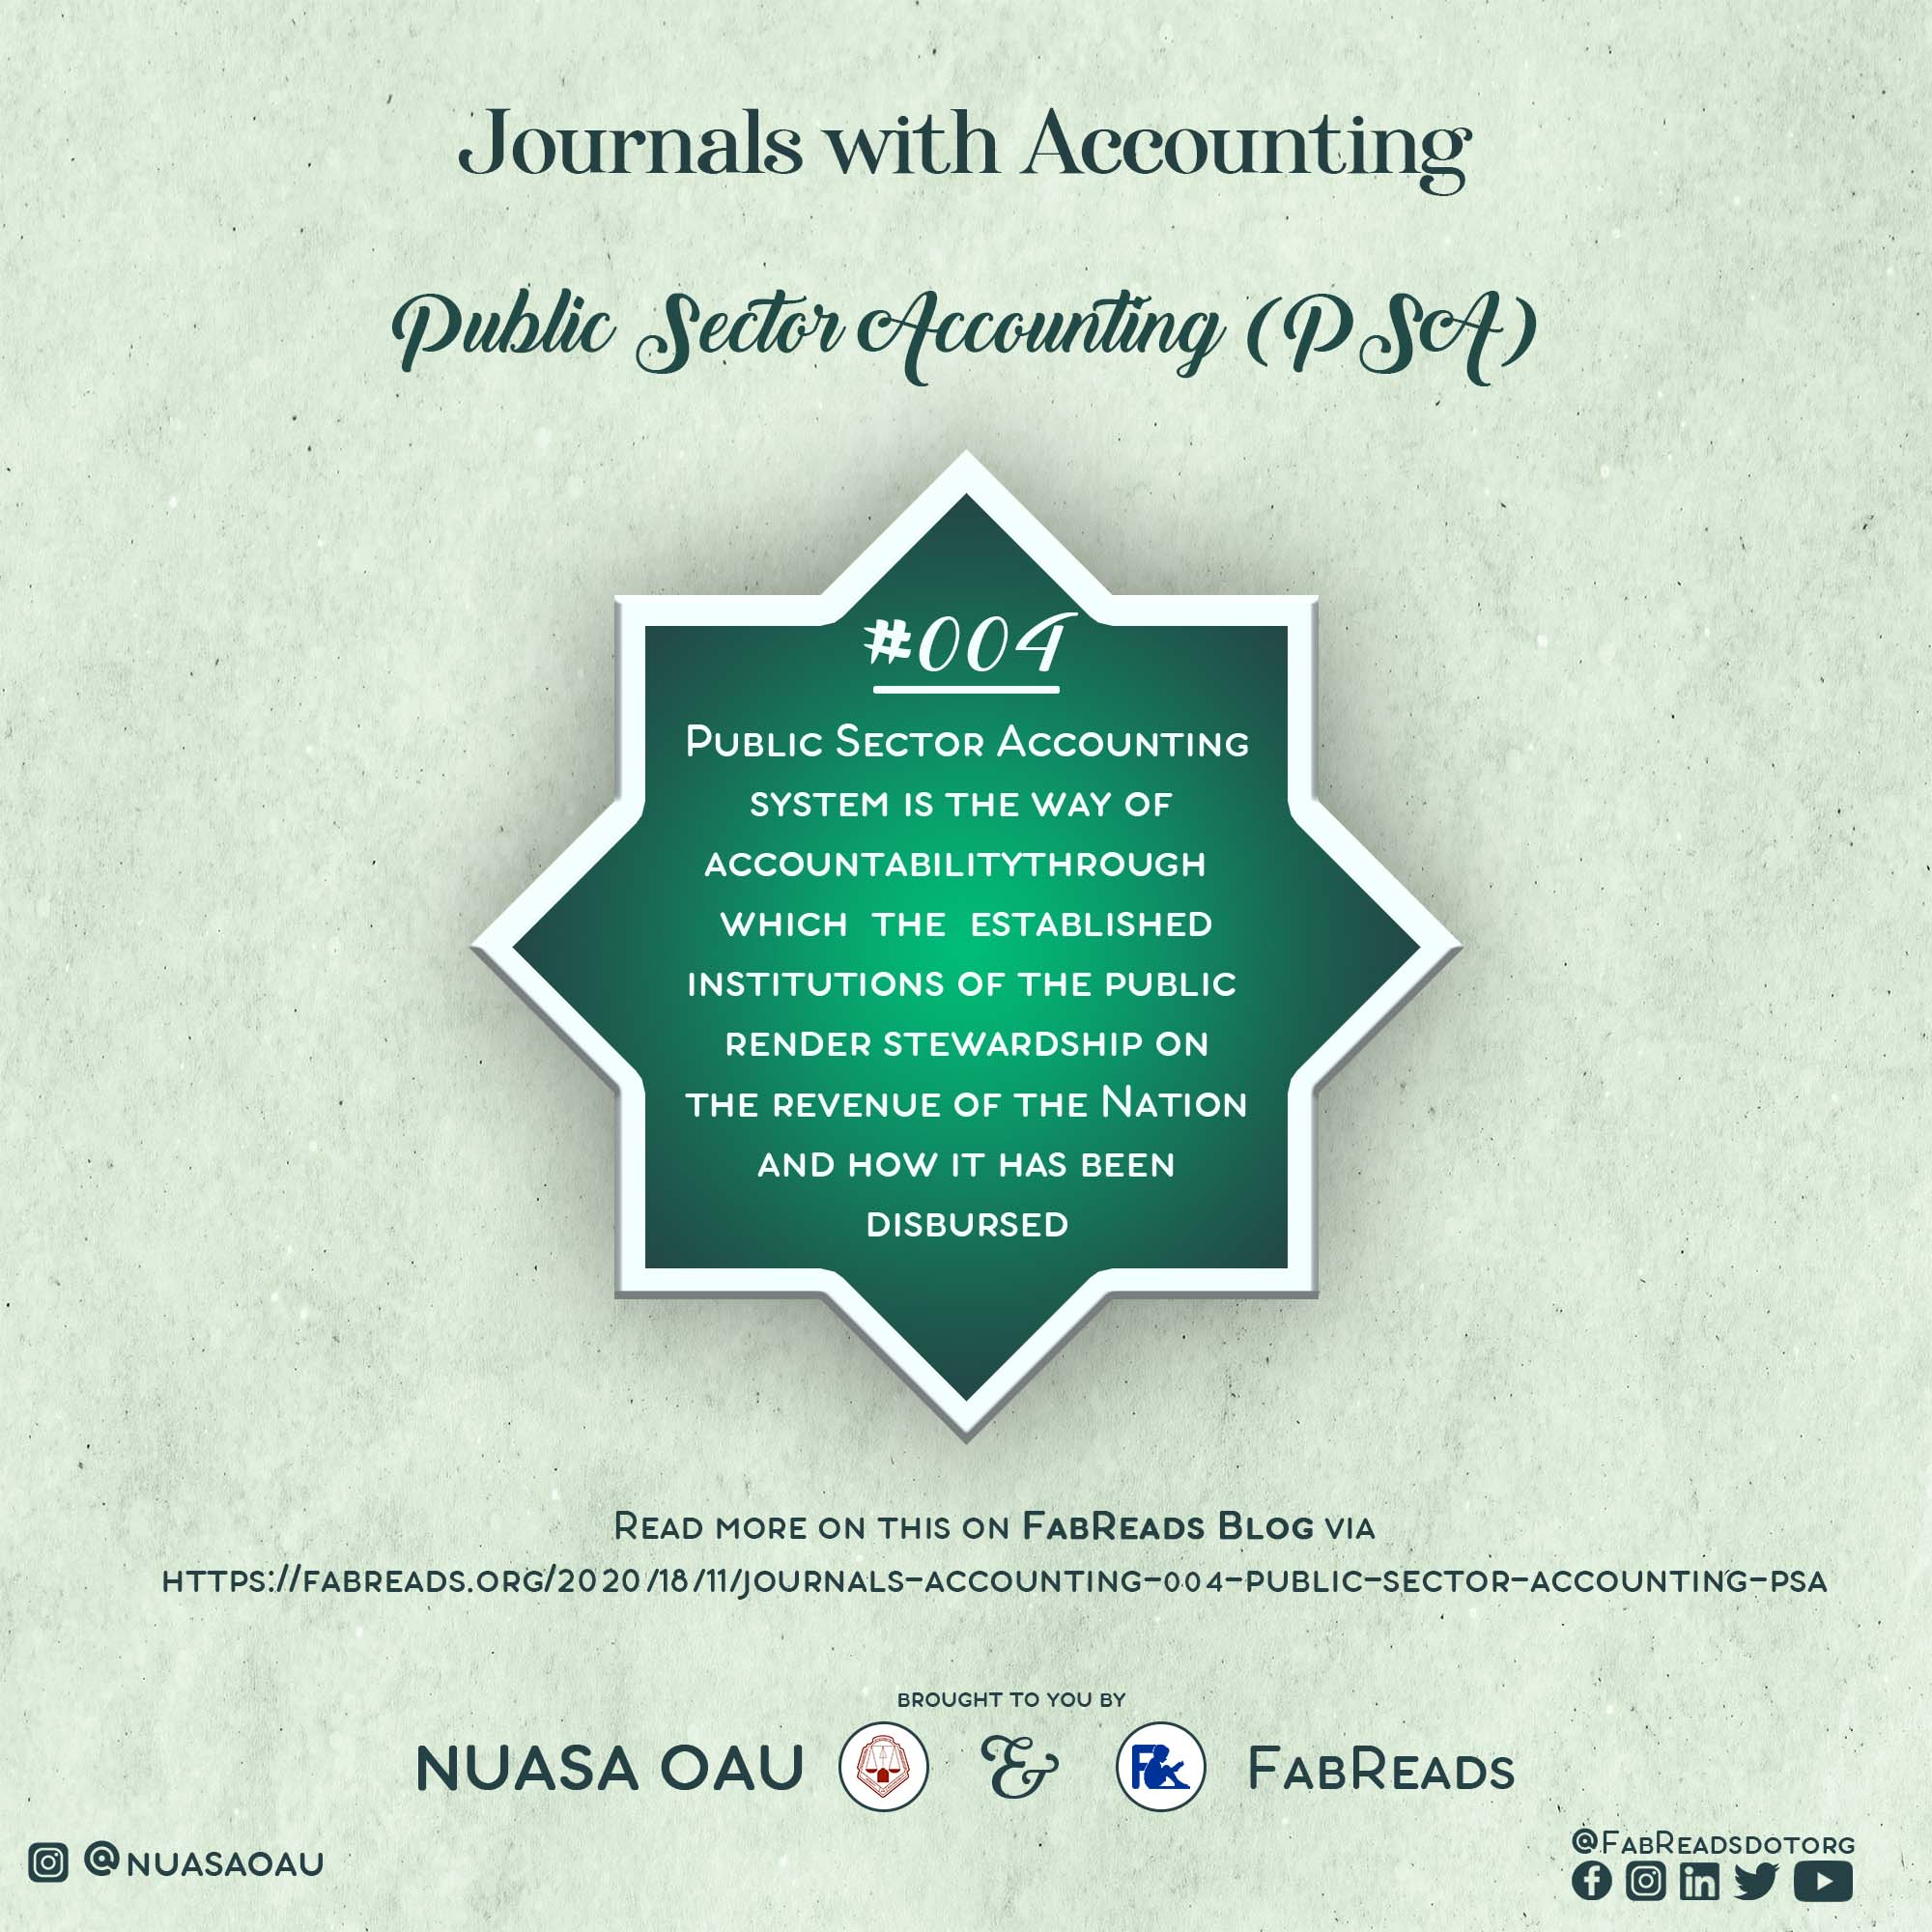 Journals with Accounting 004 – Public Sector Accounting (PSA)